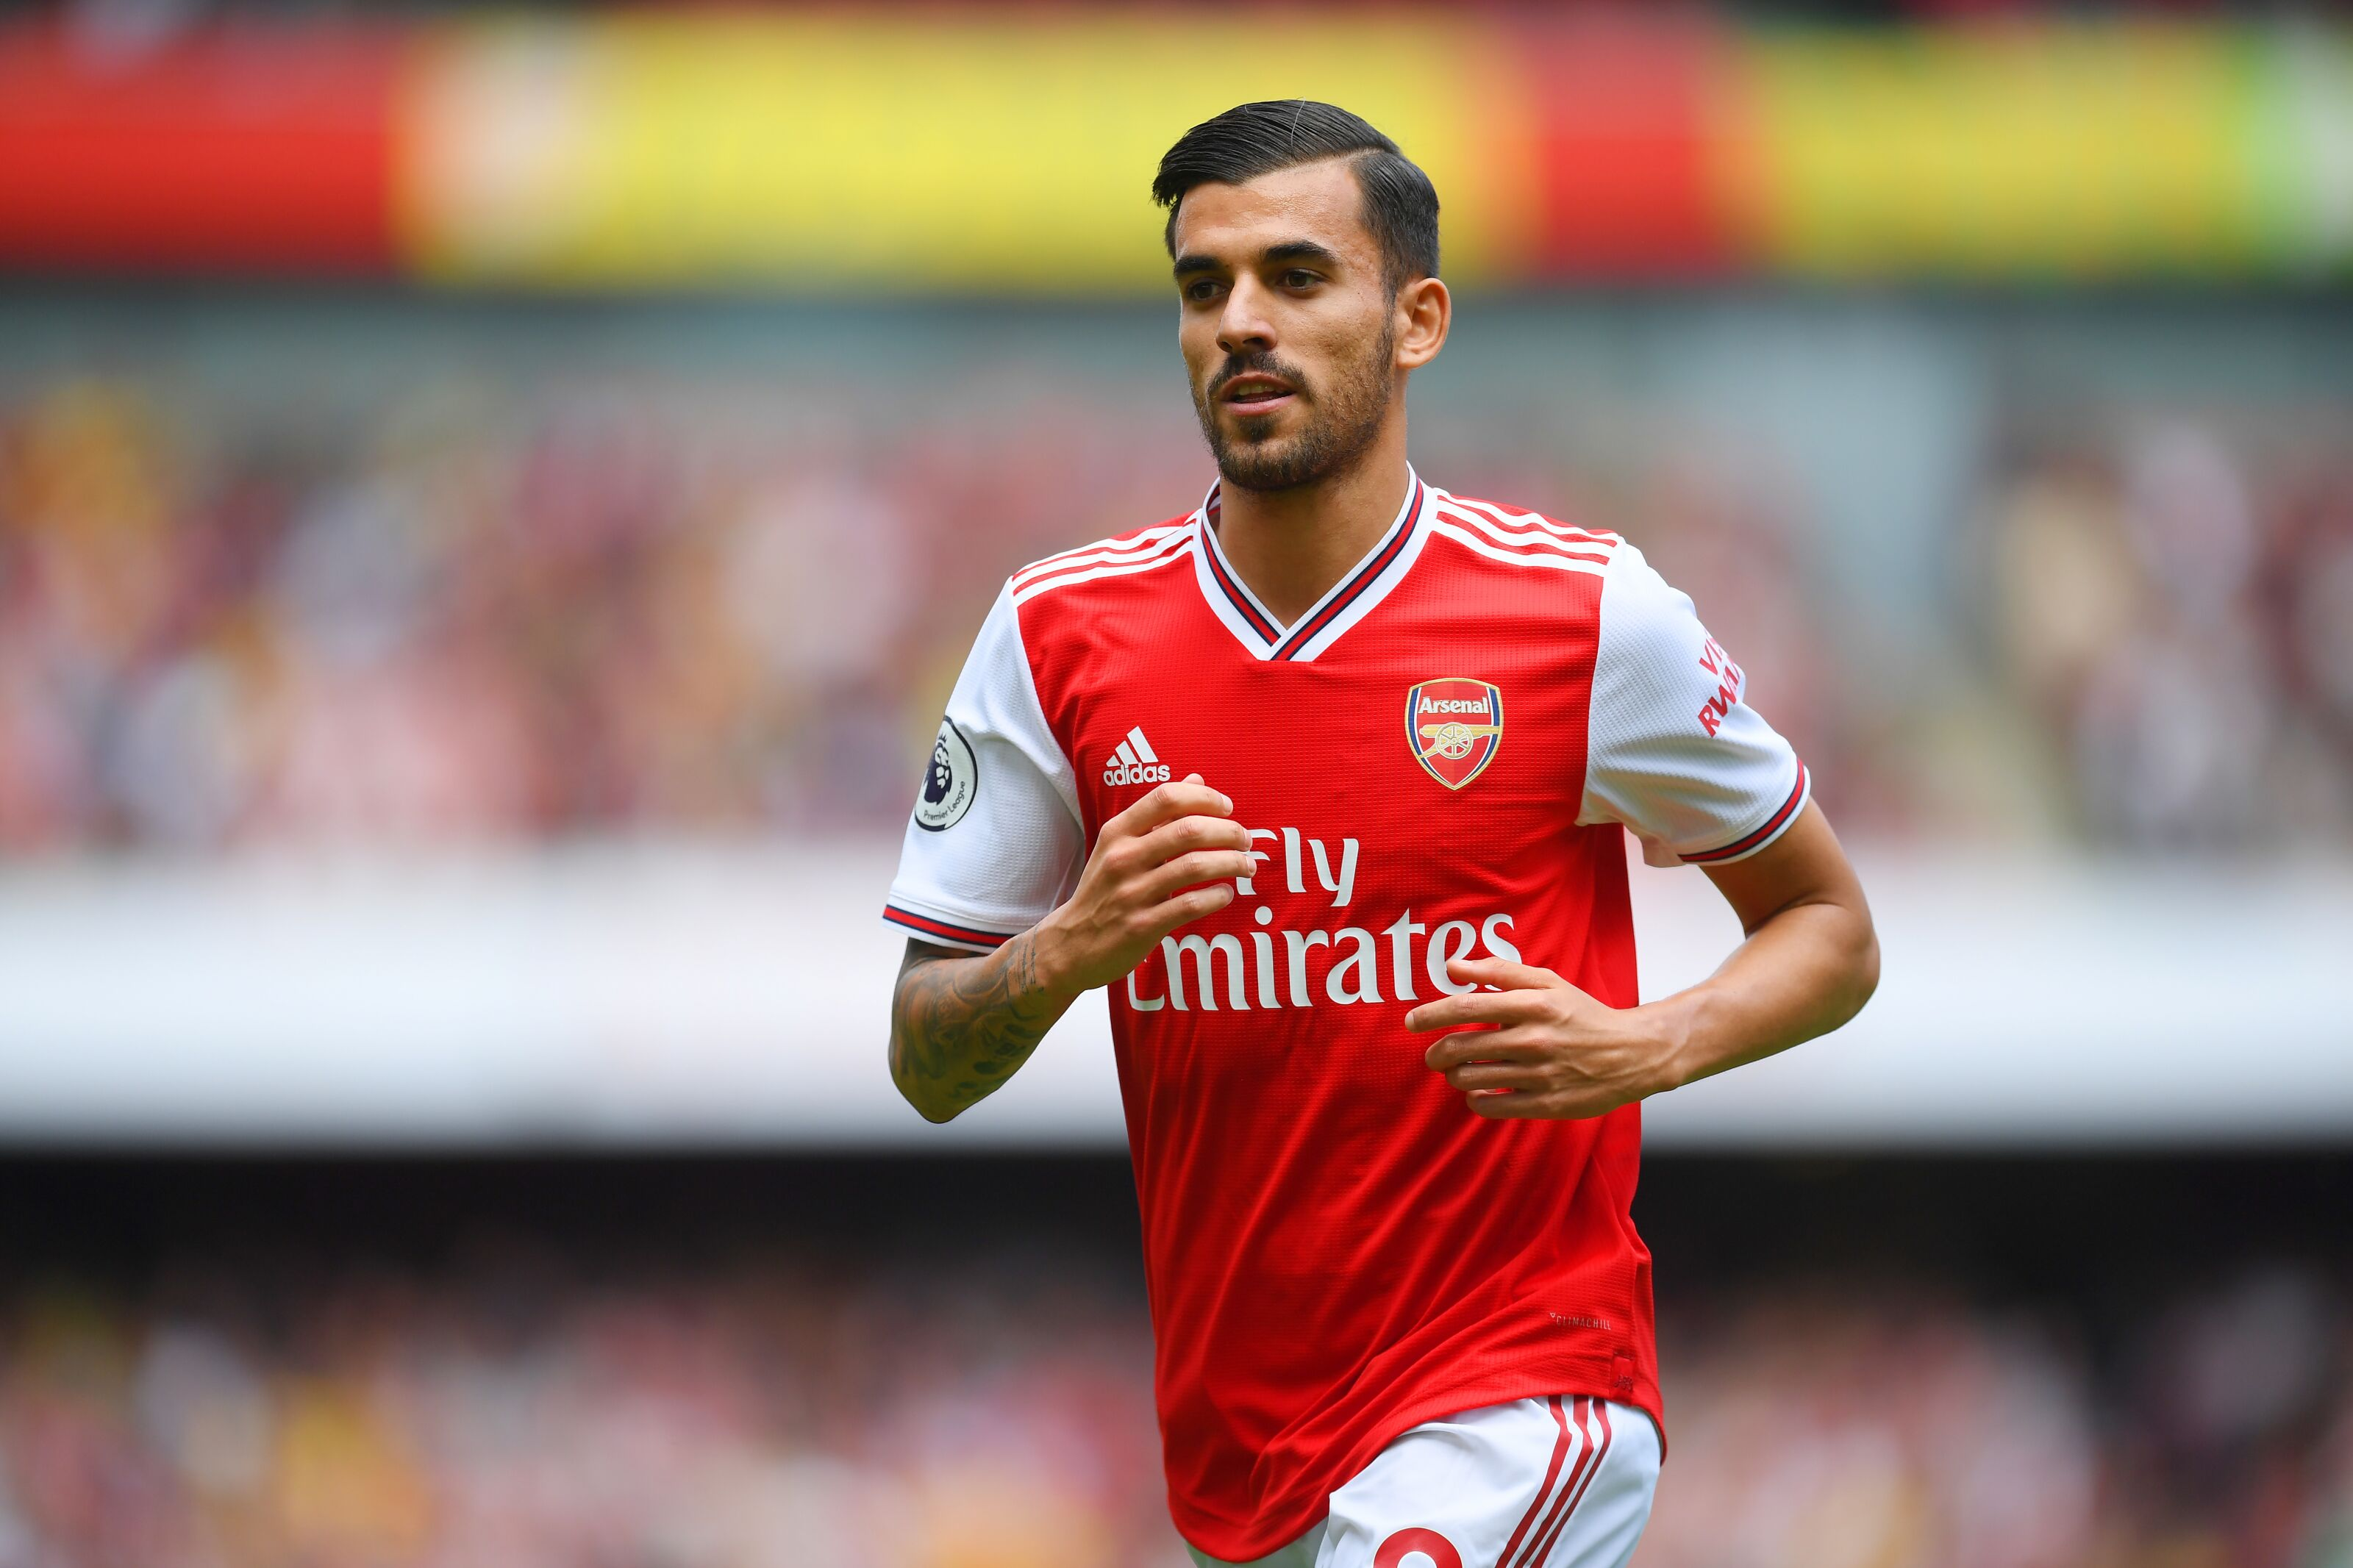 Arsenal: Dani Ceballos delivering that crucial counter-punch